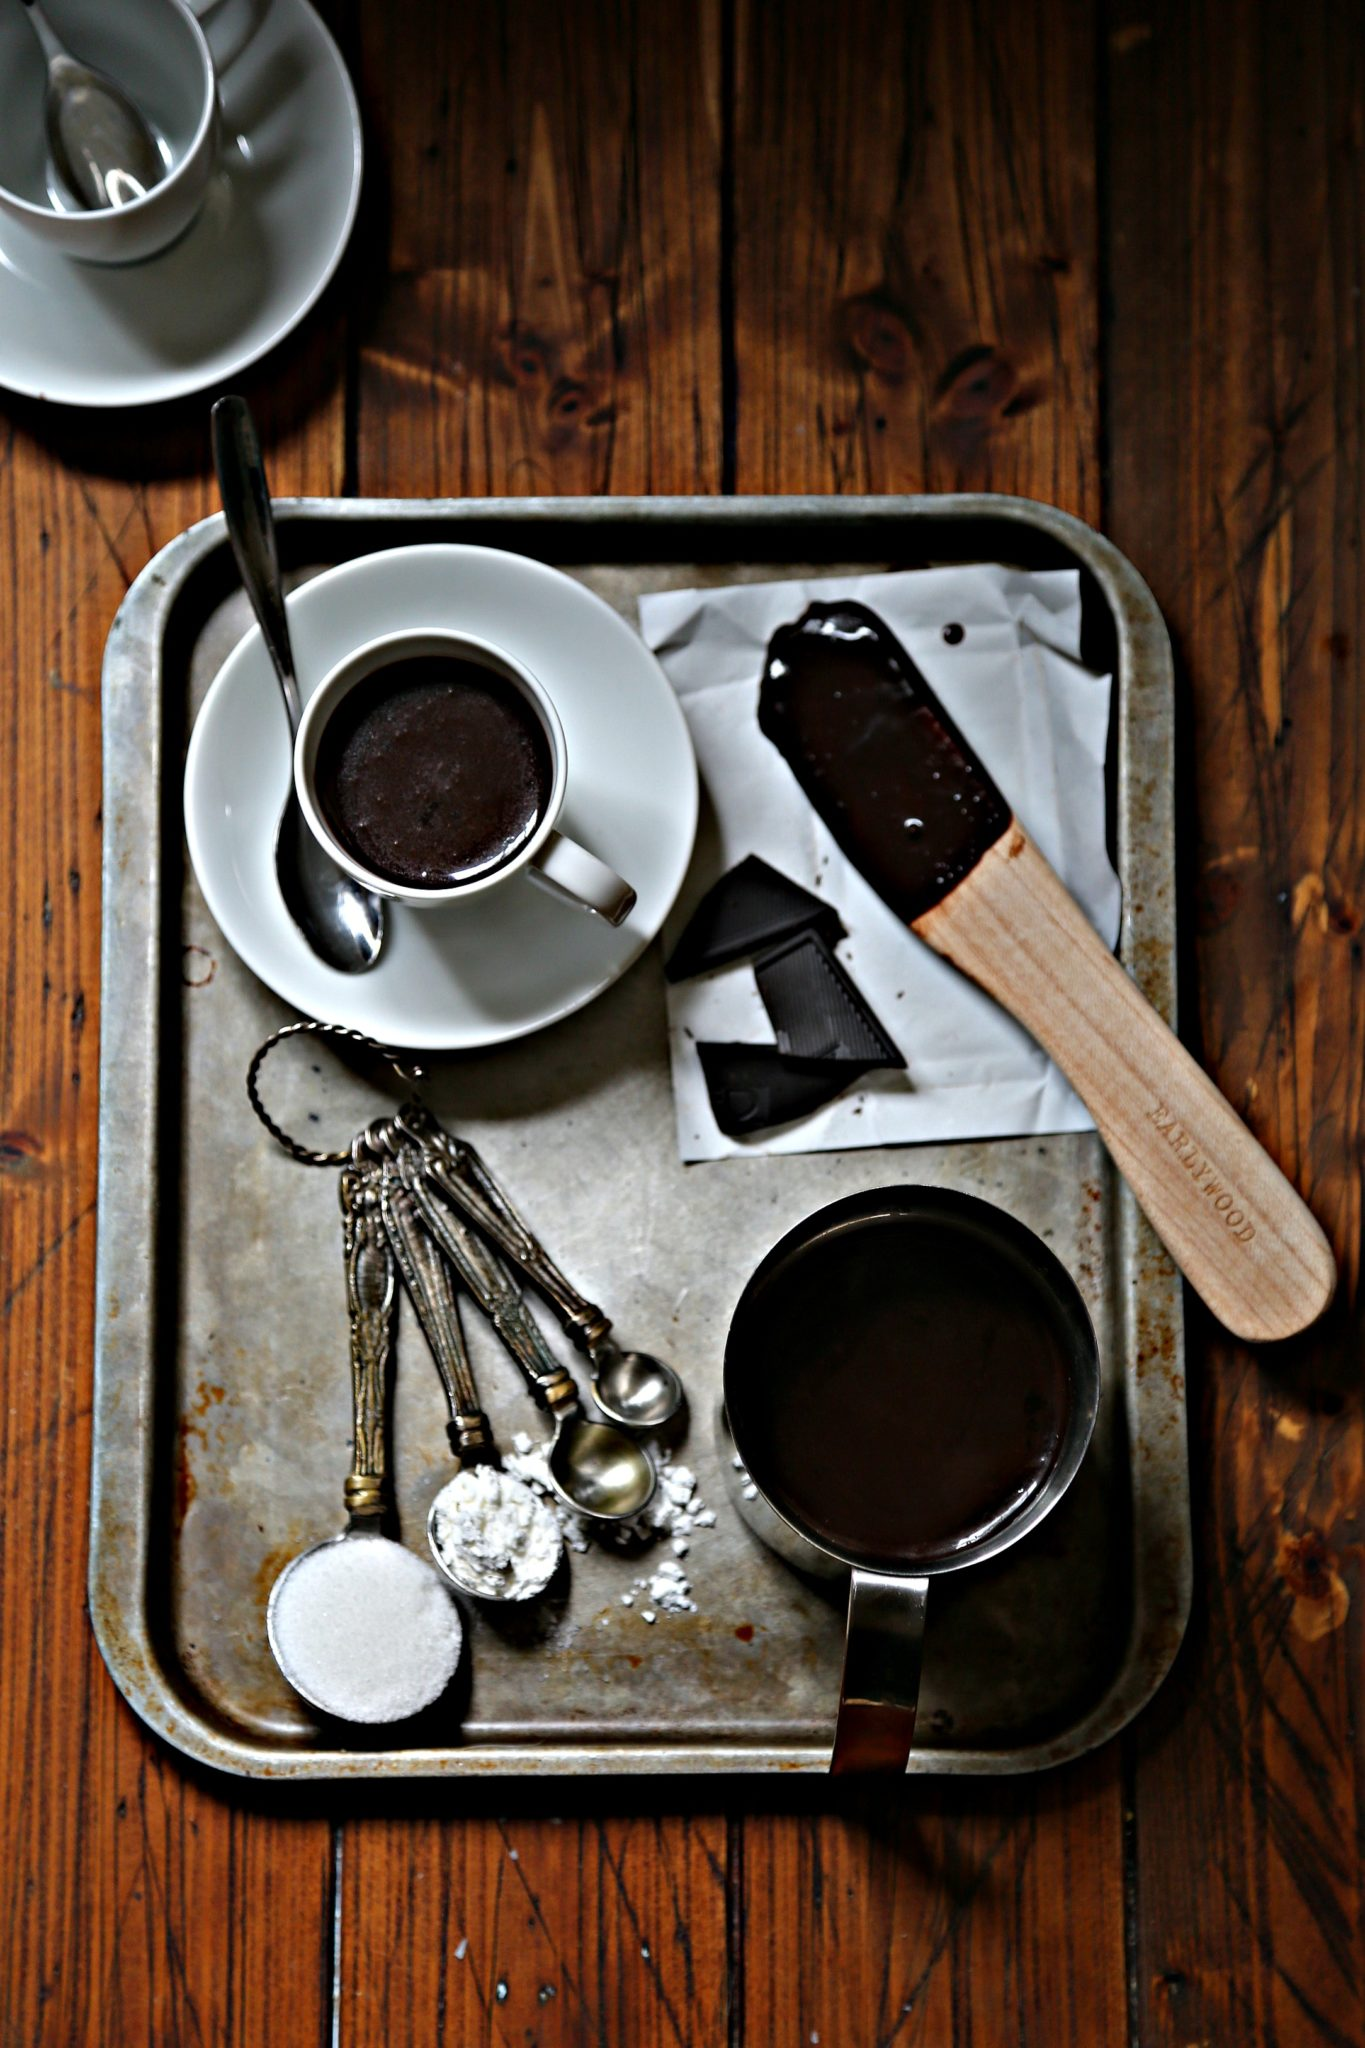 Italian hot chocolate on silver tray with spoon and ingredients via bell'alimento